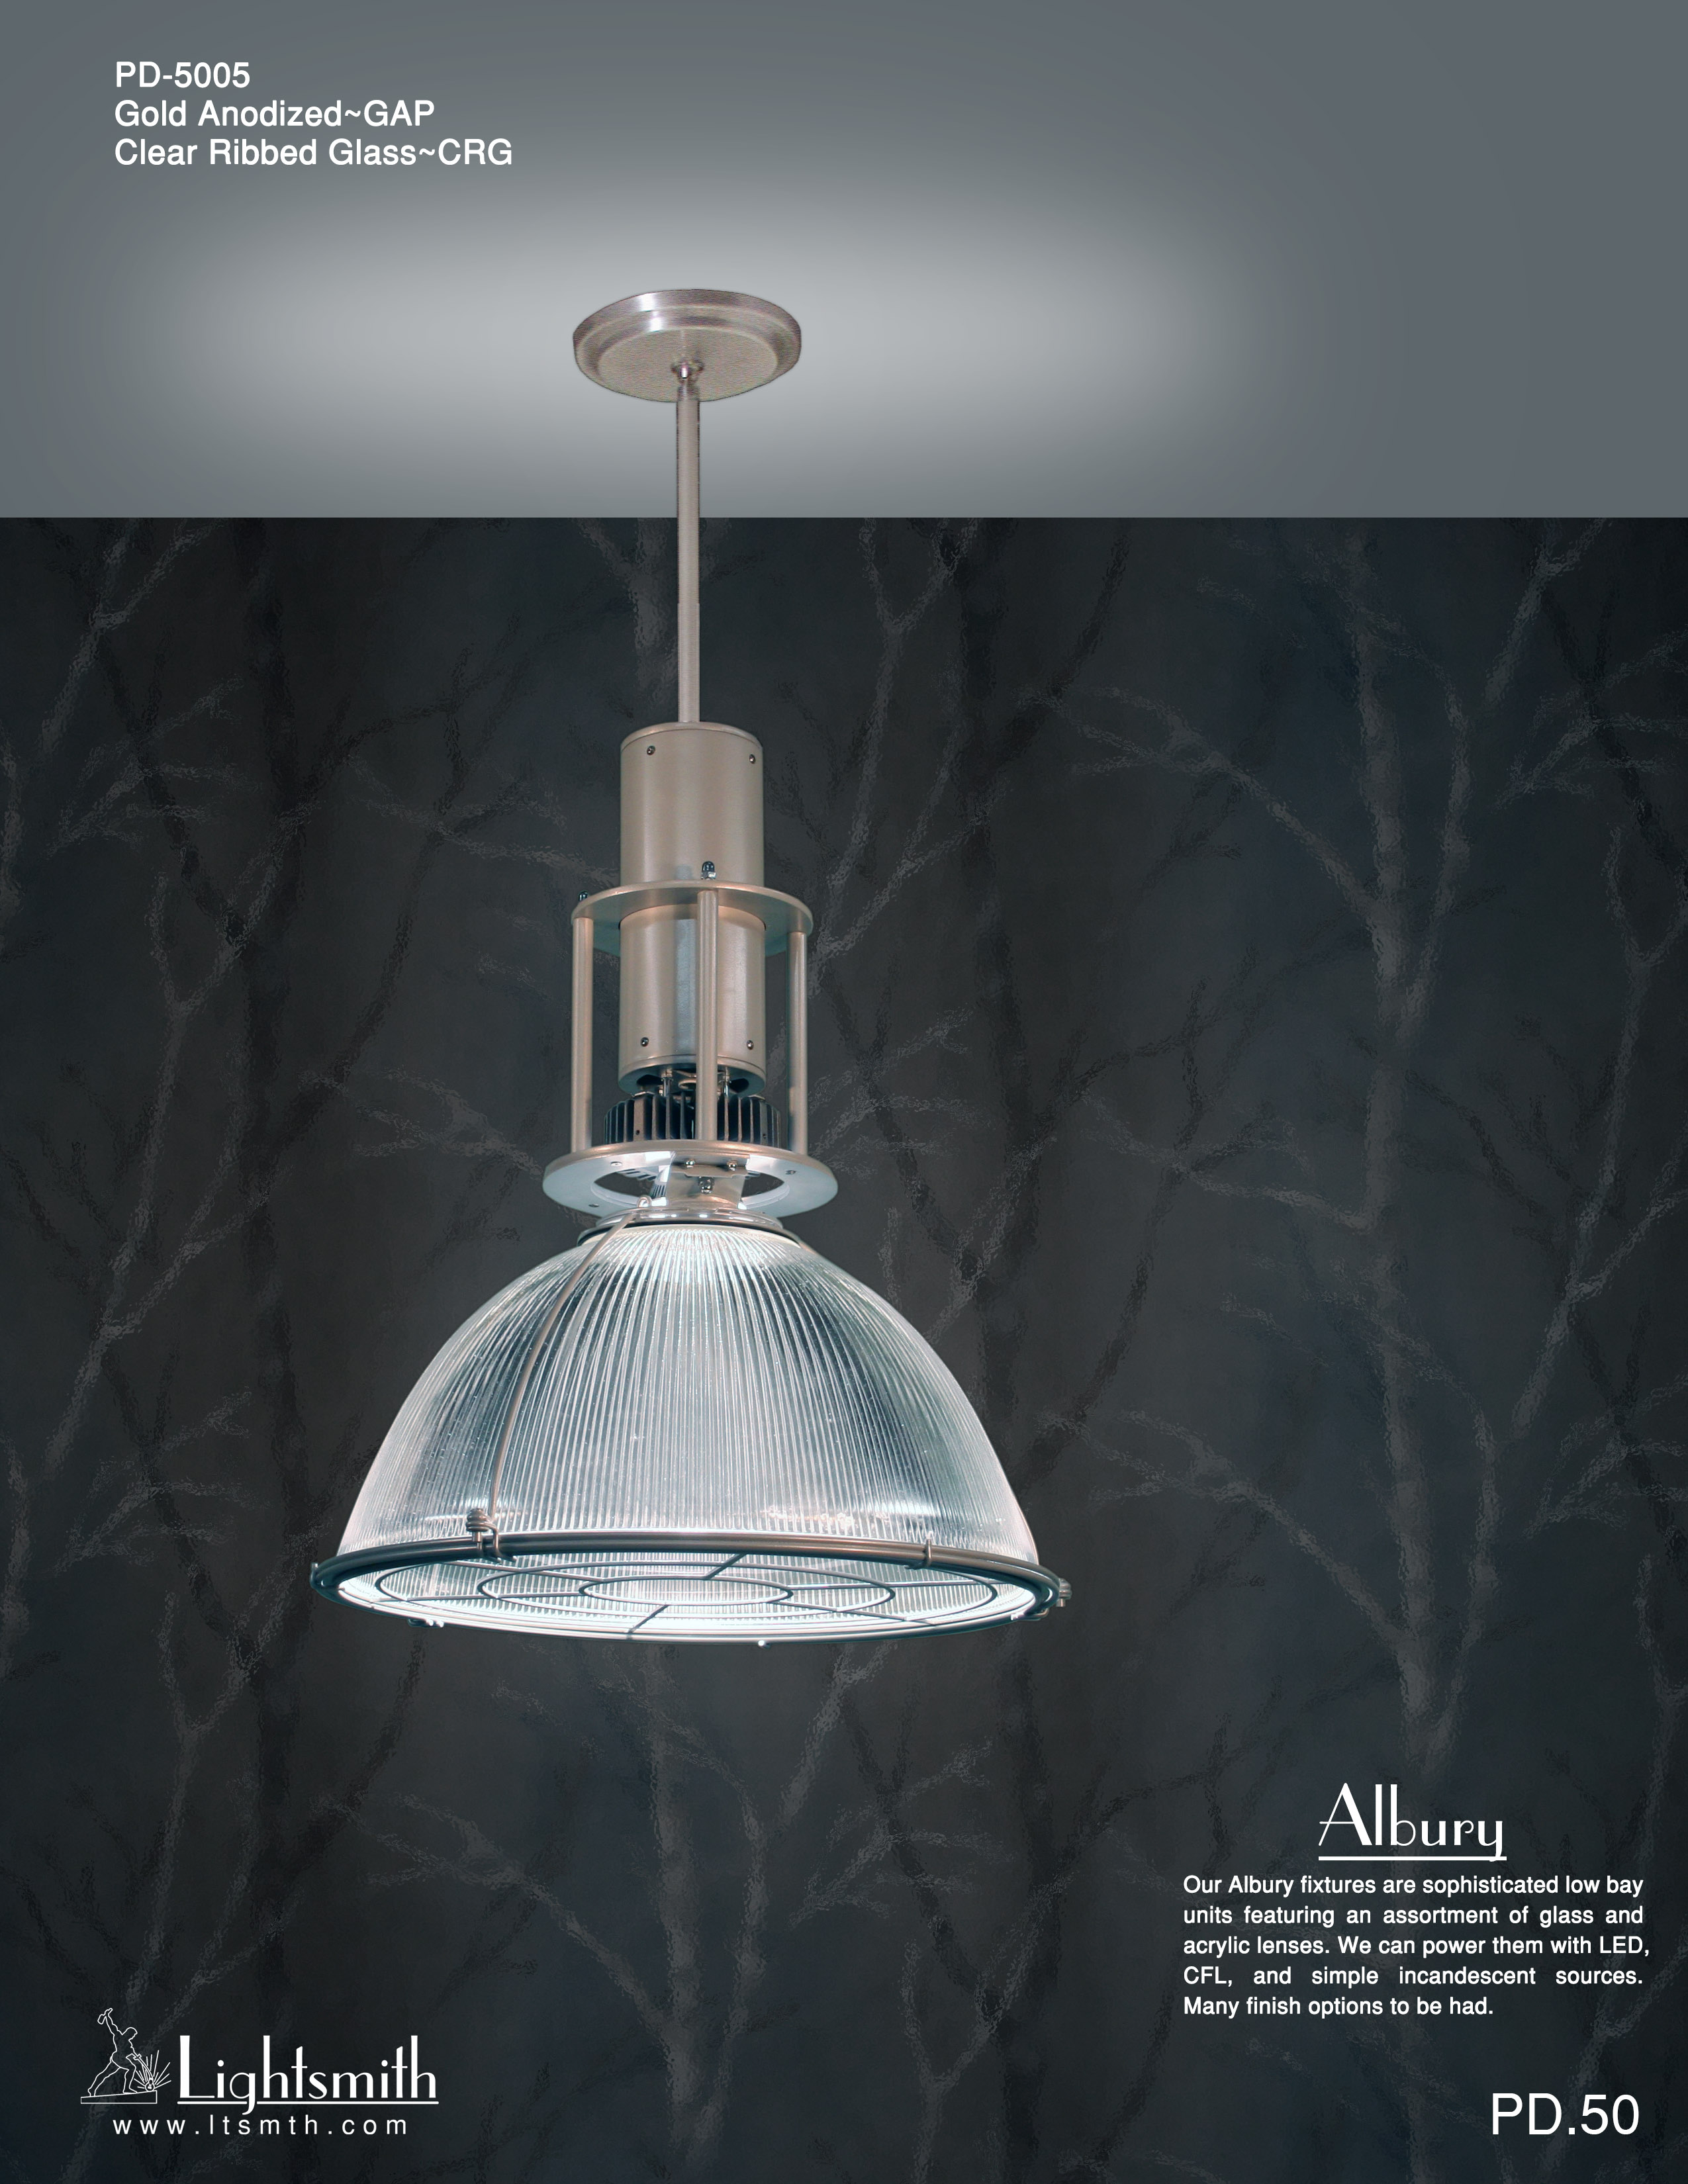 Albury Lightsmith Pd Simple 5005 Gold Anodized Clear Ribbed Shade